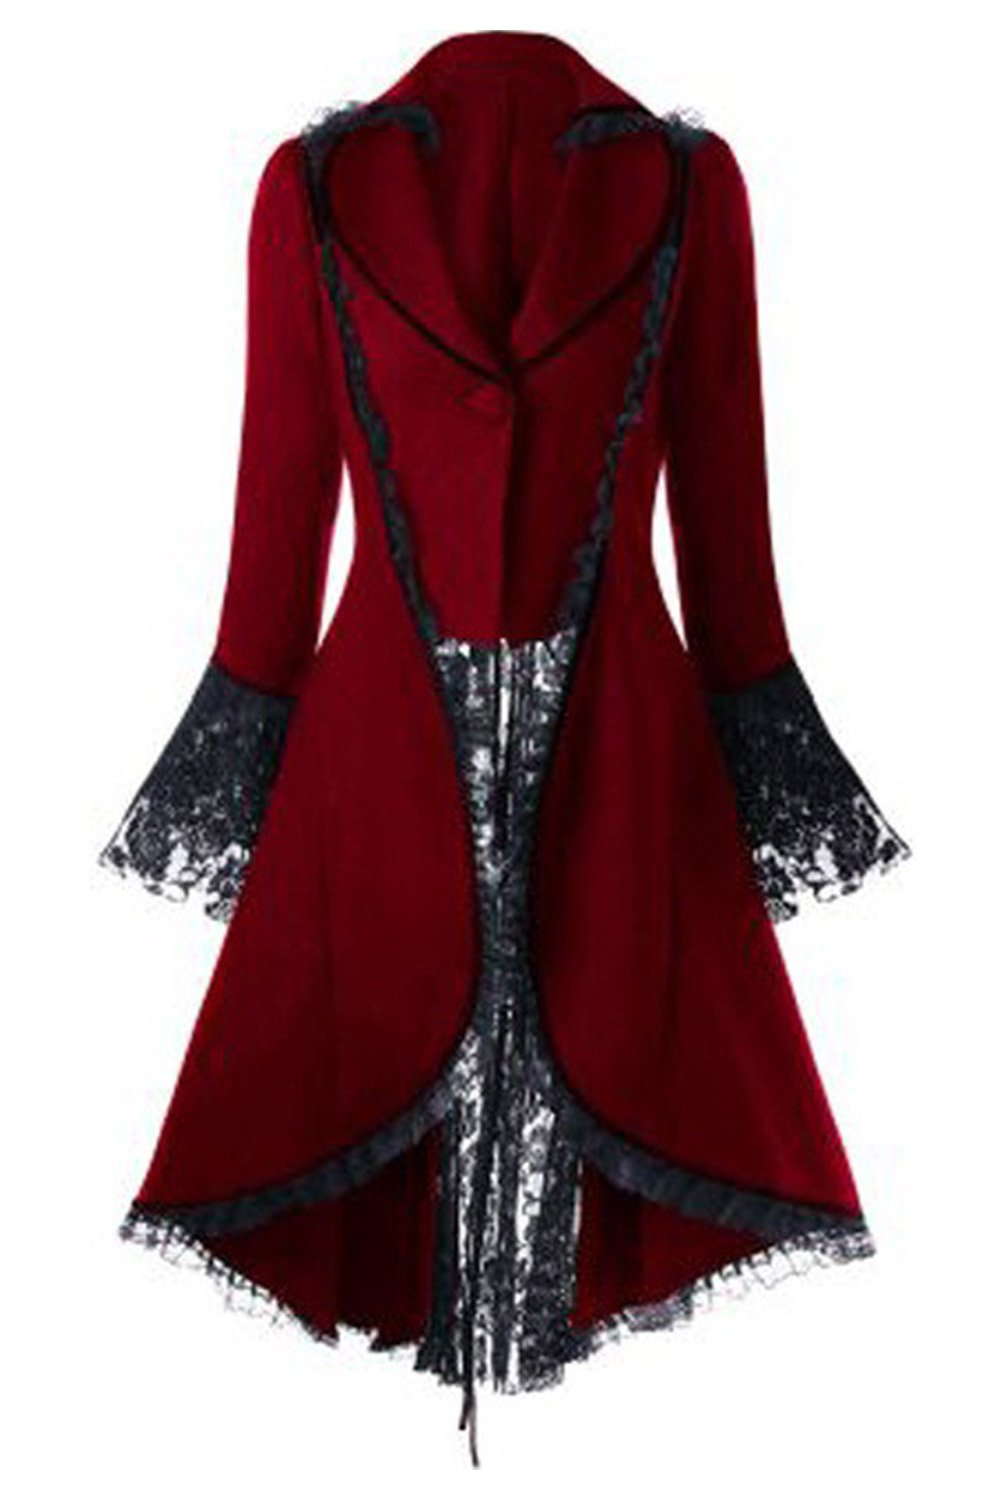 CHECKIN Women's Gothic Tailcoat Steampunk Jacket Tuxedo Suit Victorian Costume Coat (XX-Large, Red)